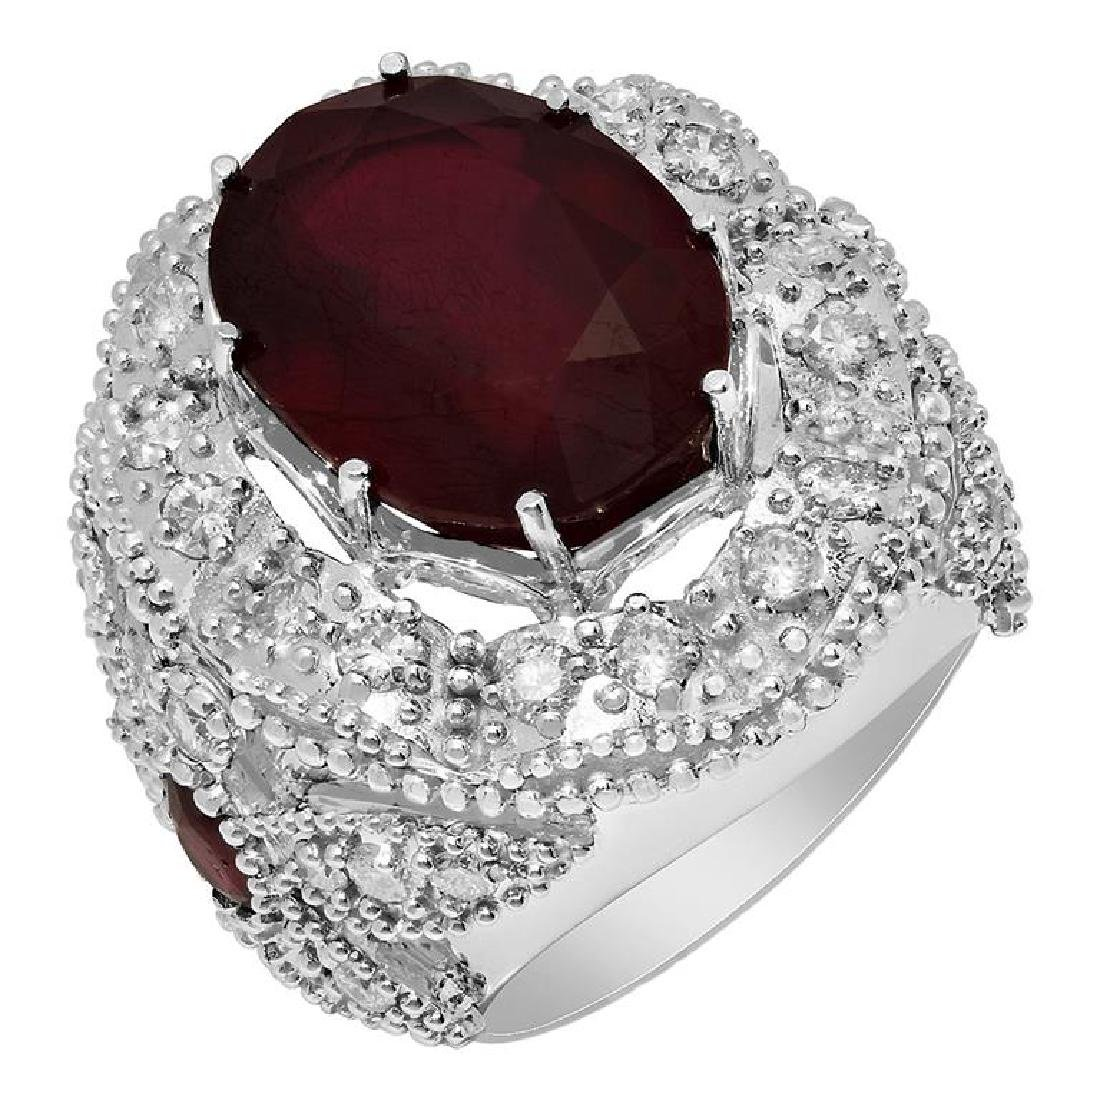 14k White Gold 18.20ct & 0.80ct Ruby 2.09ct Diamond